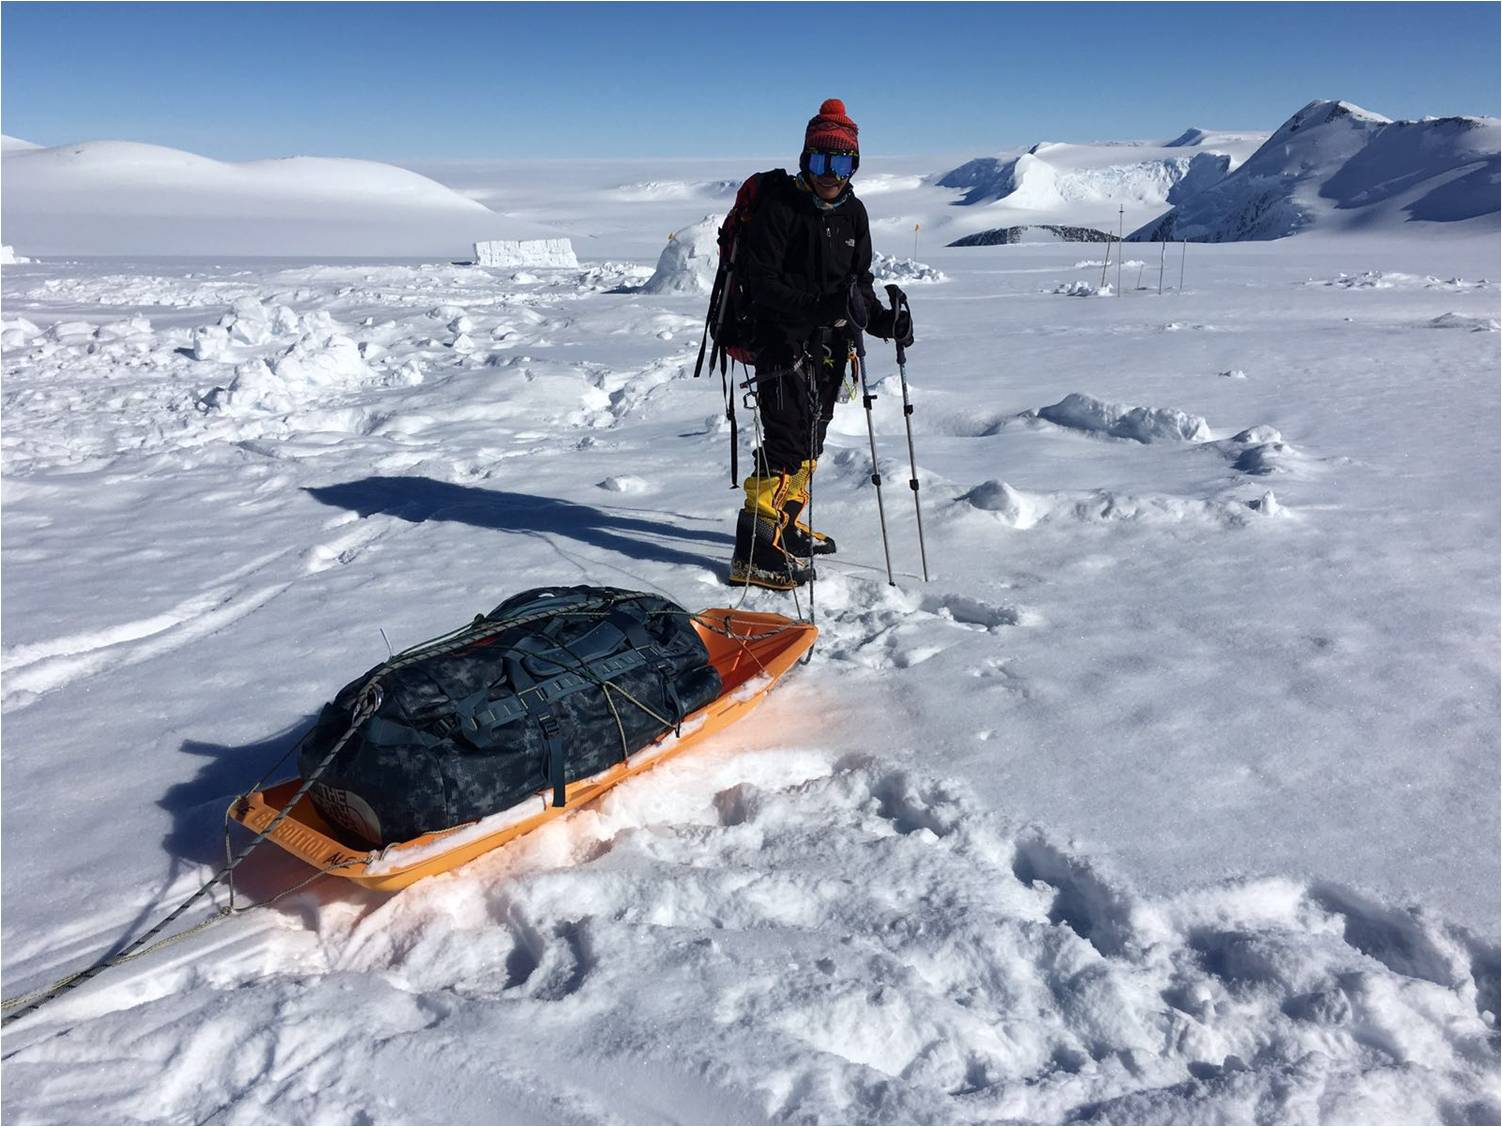 On way to scaling Vinson Matiff